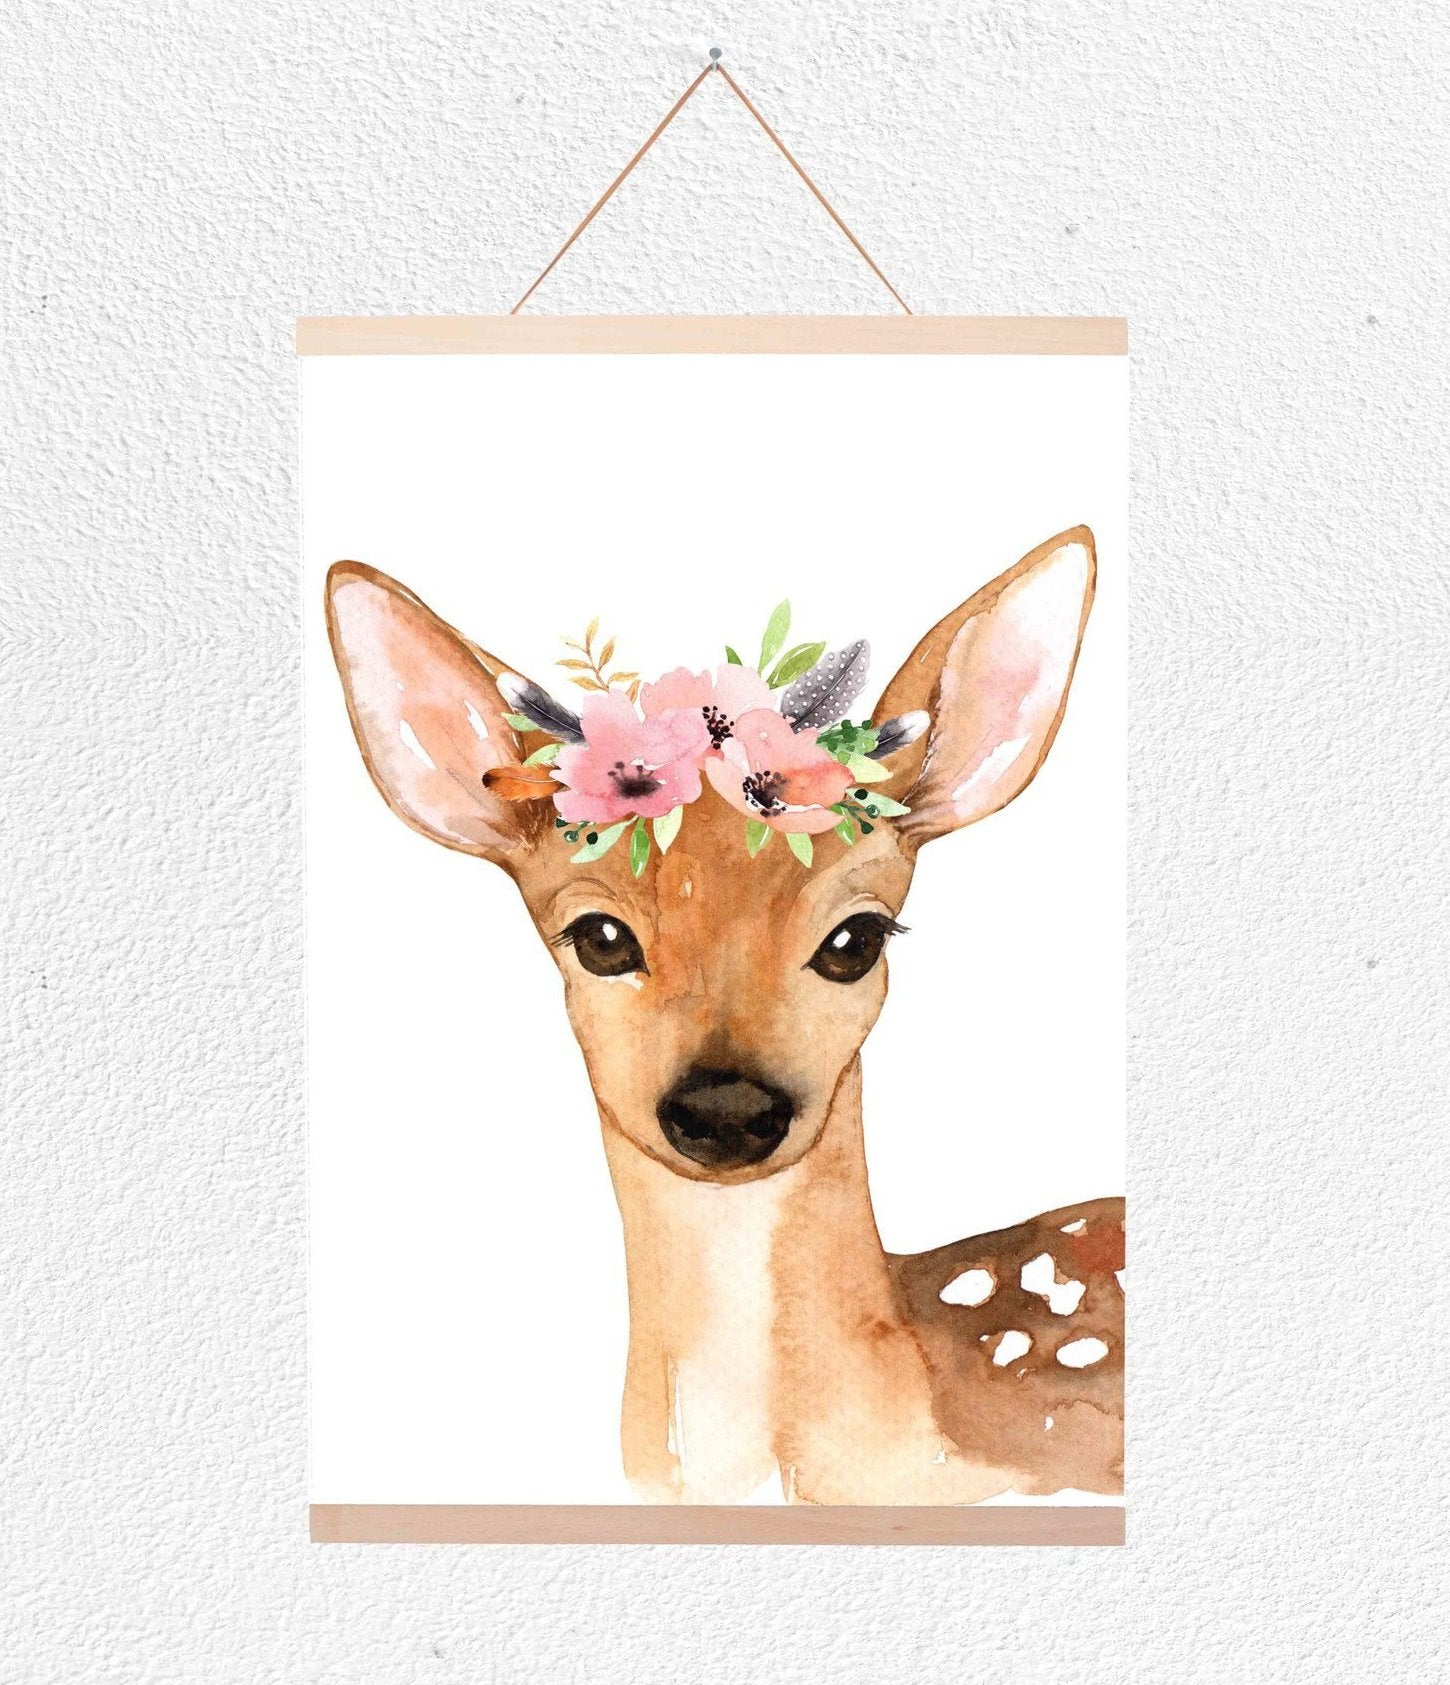 Deer With Flower Crown Hanging Print